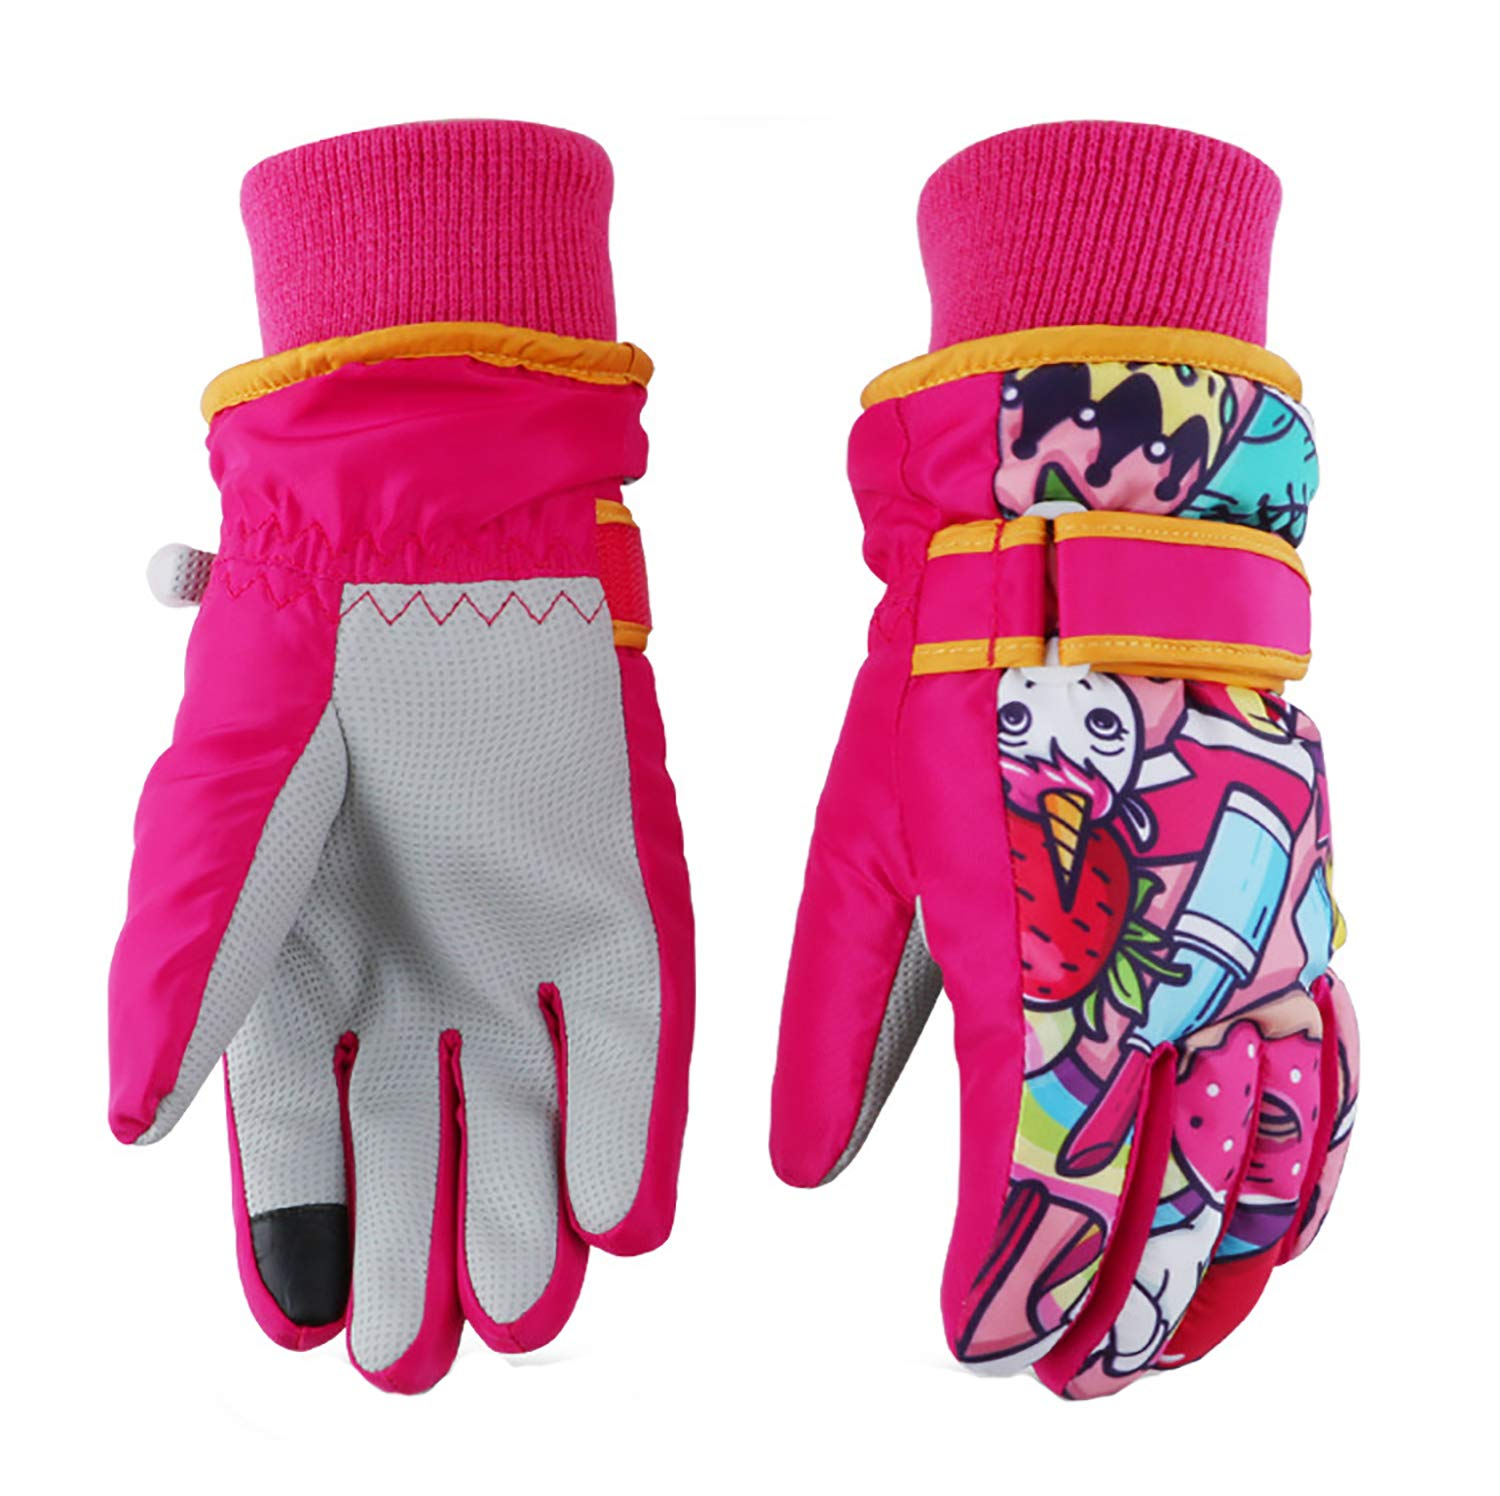 JoJoSports Kids Ski Gloves, Winter Warmest Waterproof and Breathable Snow Gloves for Boys Girls Children Skiing, Snowboarding Shoveling Windproof Juniors Thermal Gloves ST8